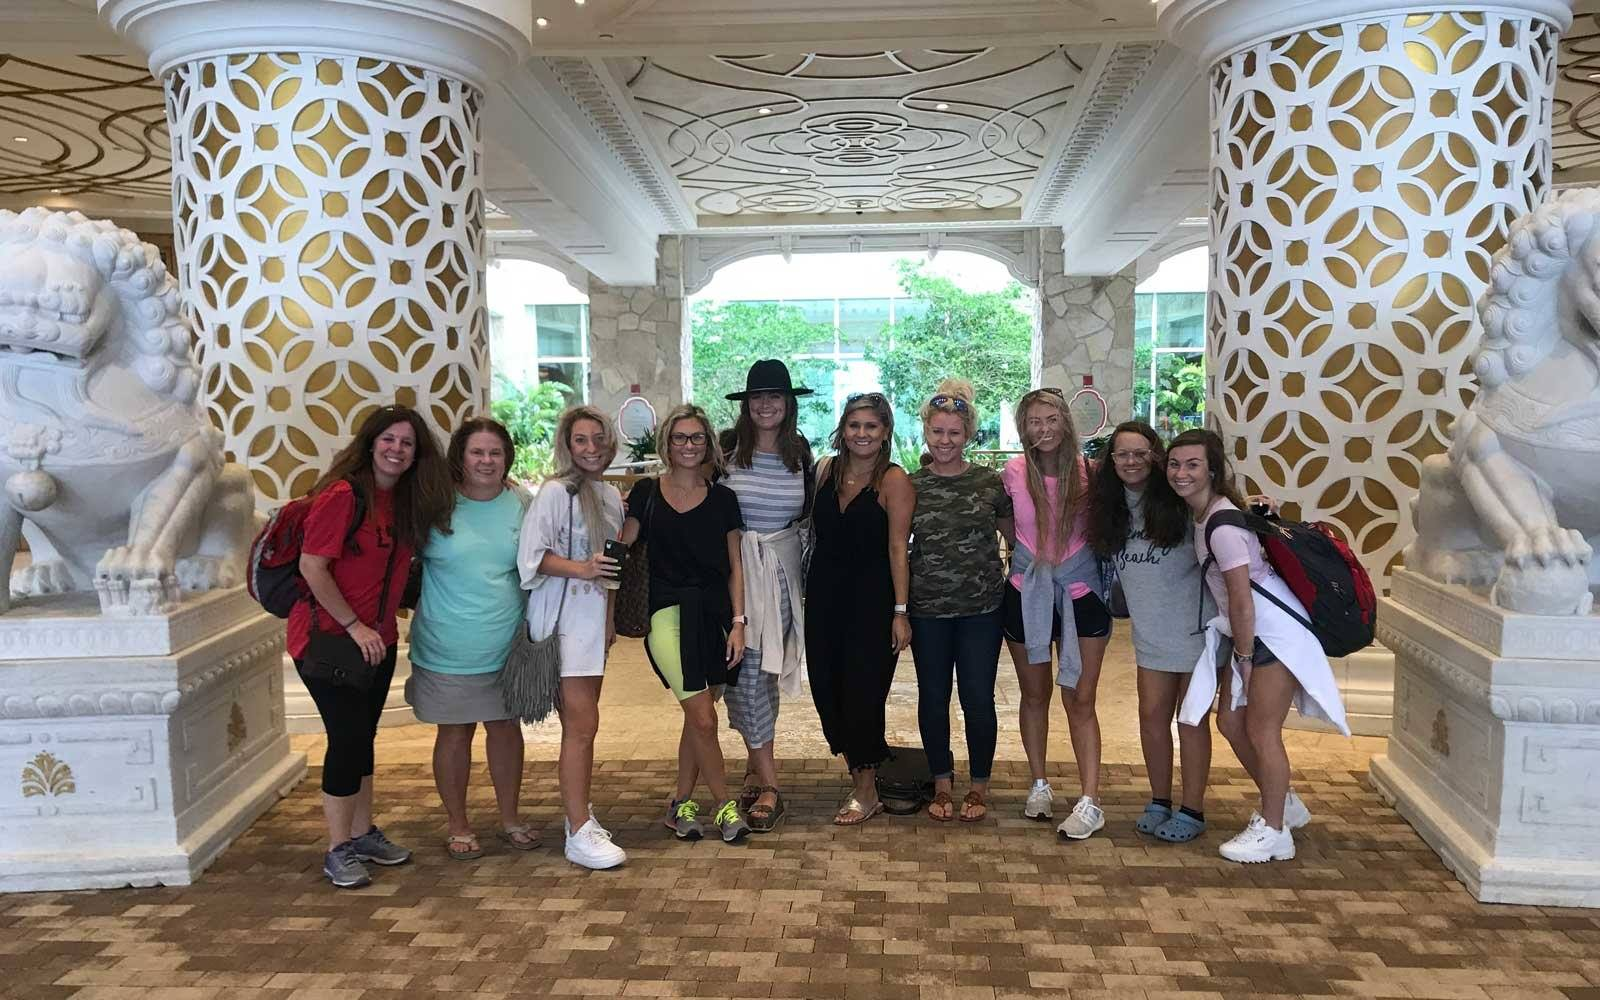 This Woman's Bachelorette Party Will Inspire You to Dig Deep and Give Back When Things Don't Go Your Way